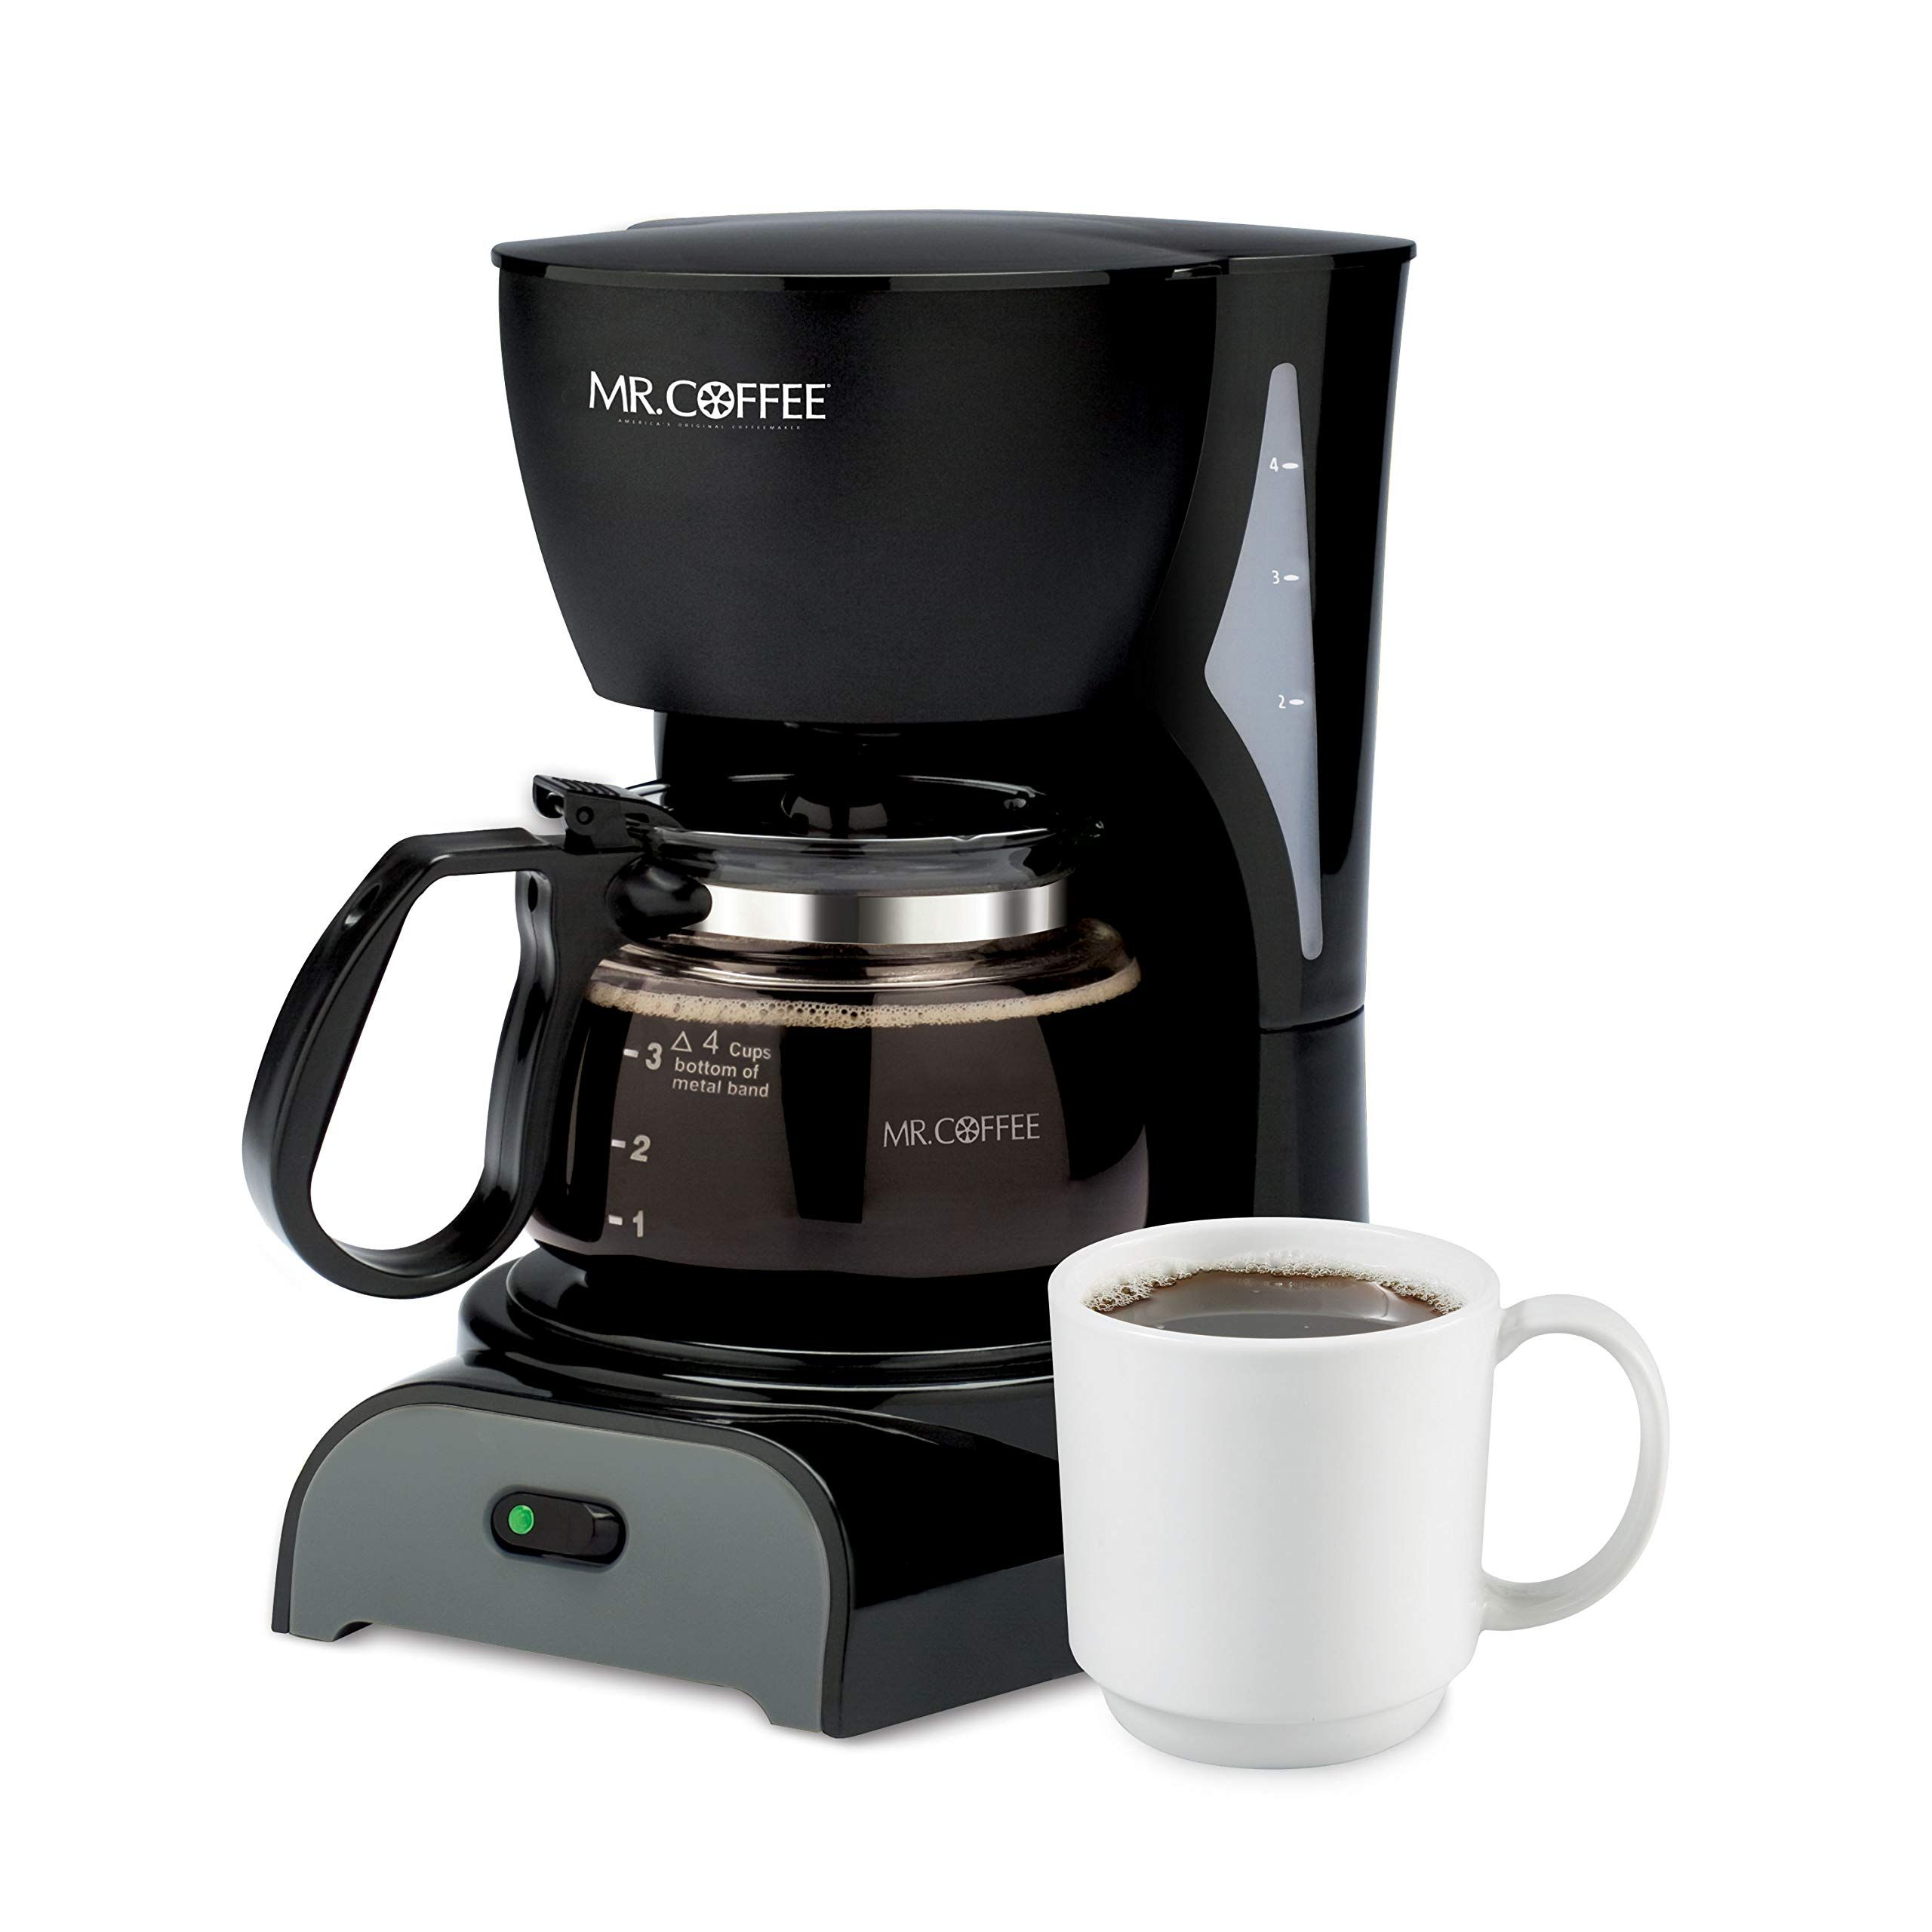 Mr Coffee Simple Maker Machine In 2020 4 Cup Coffee Maker Coffee Maker Best Drip Coffee Maker